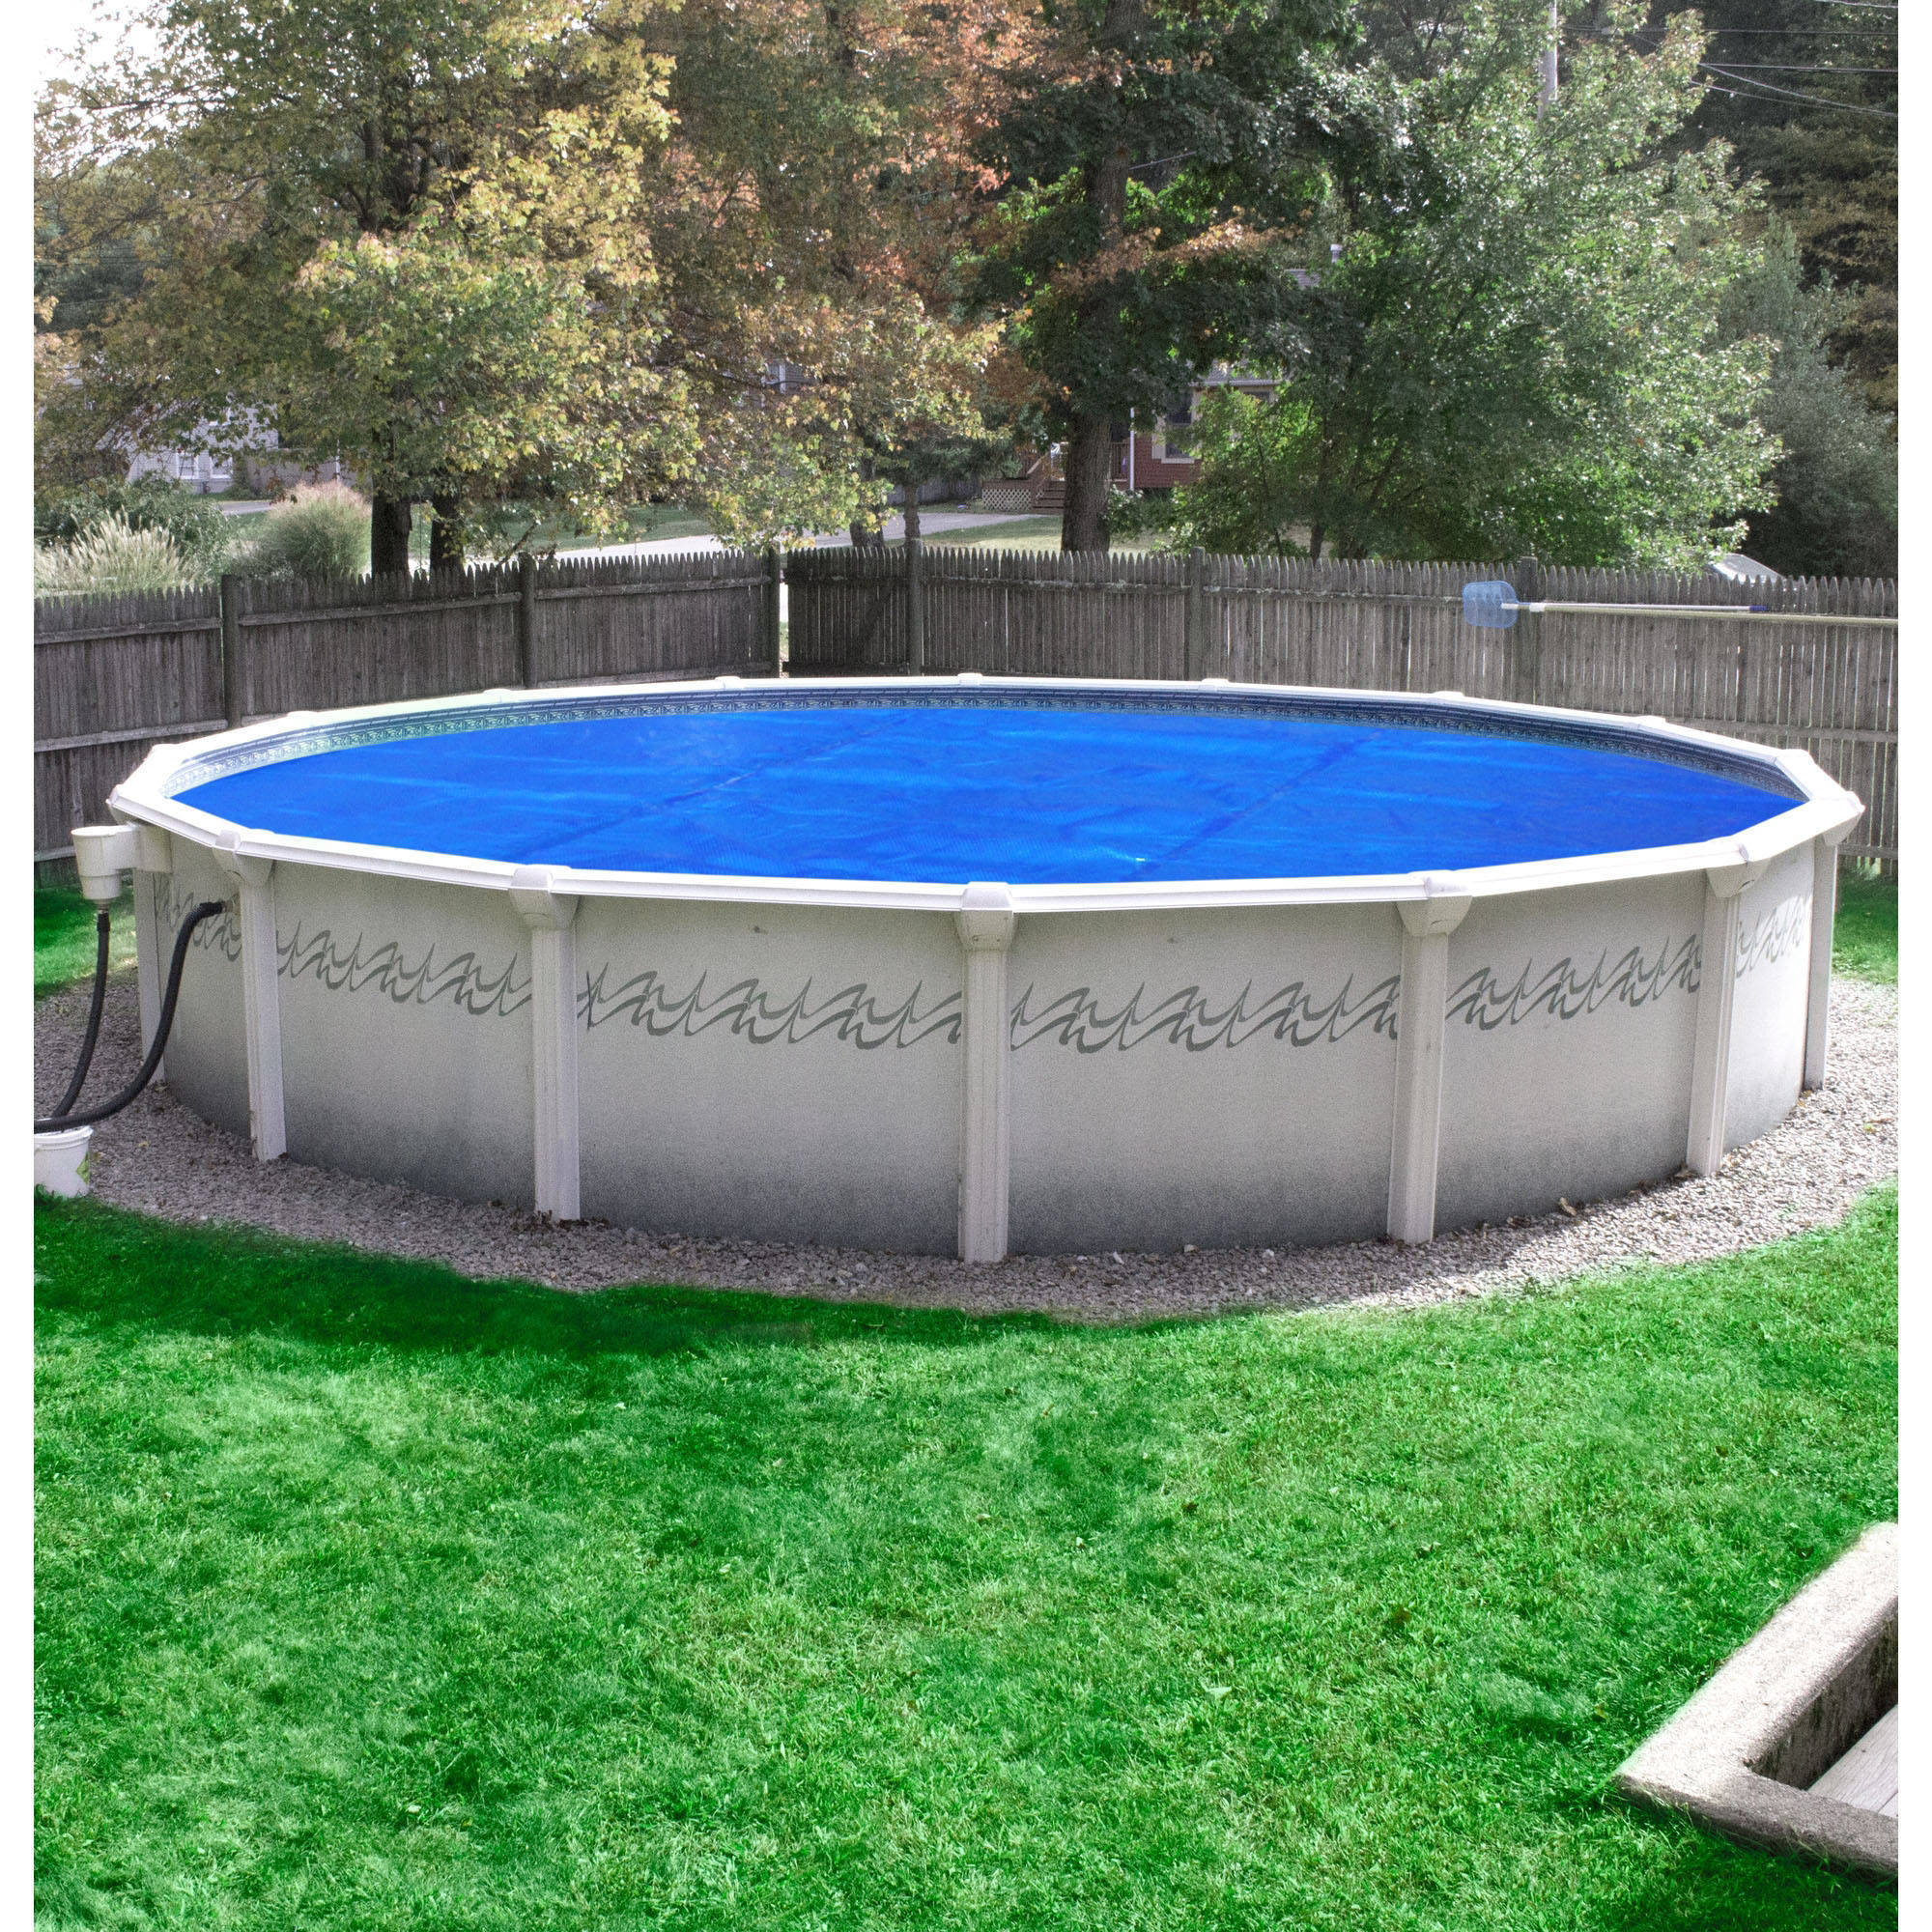 above ground pool solar covers. Pool Mate Deluxe 3-Year Blue Solar Blanket For Above Ground Swimming Pools - Walmart.com Covers